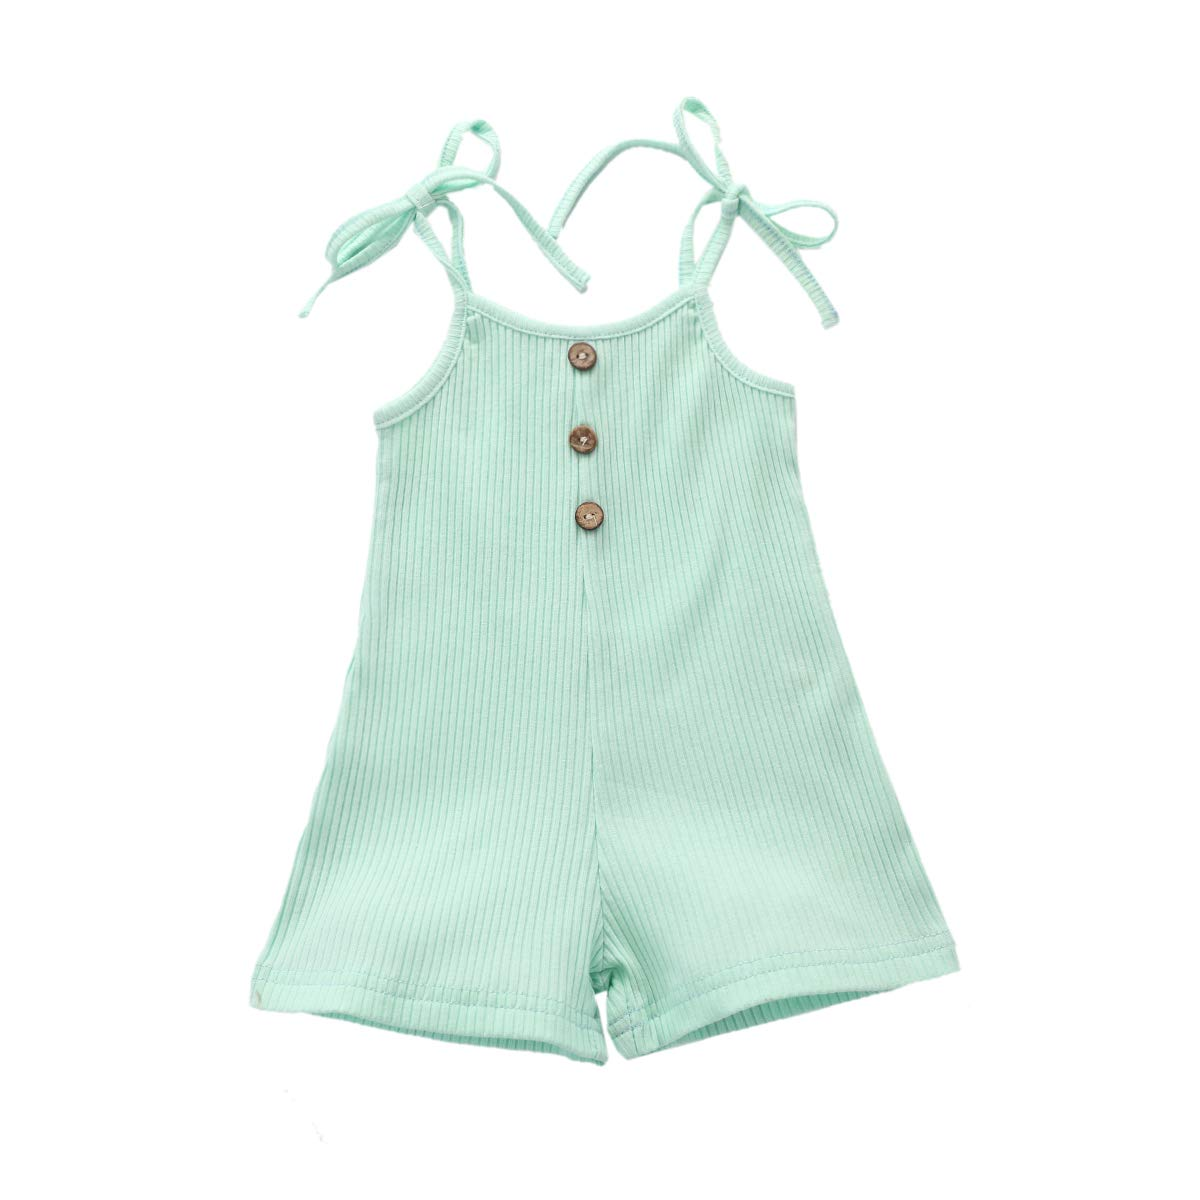 YALLET Newborn Baby Girl Clothes Sling Jumpsuit Summer Outfits Solid Color Romper Infant Baby Clothes